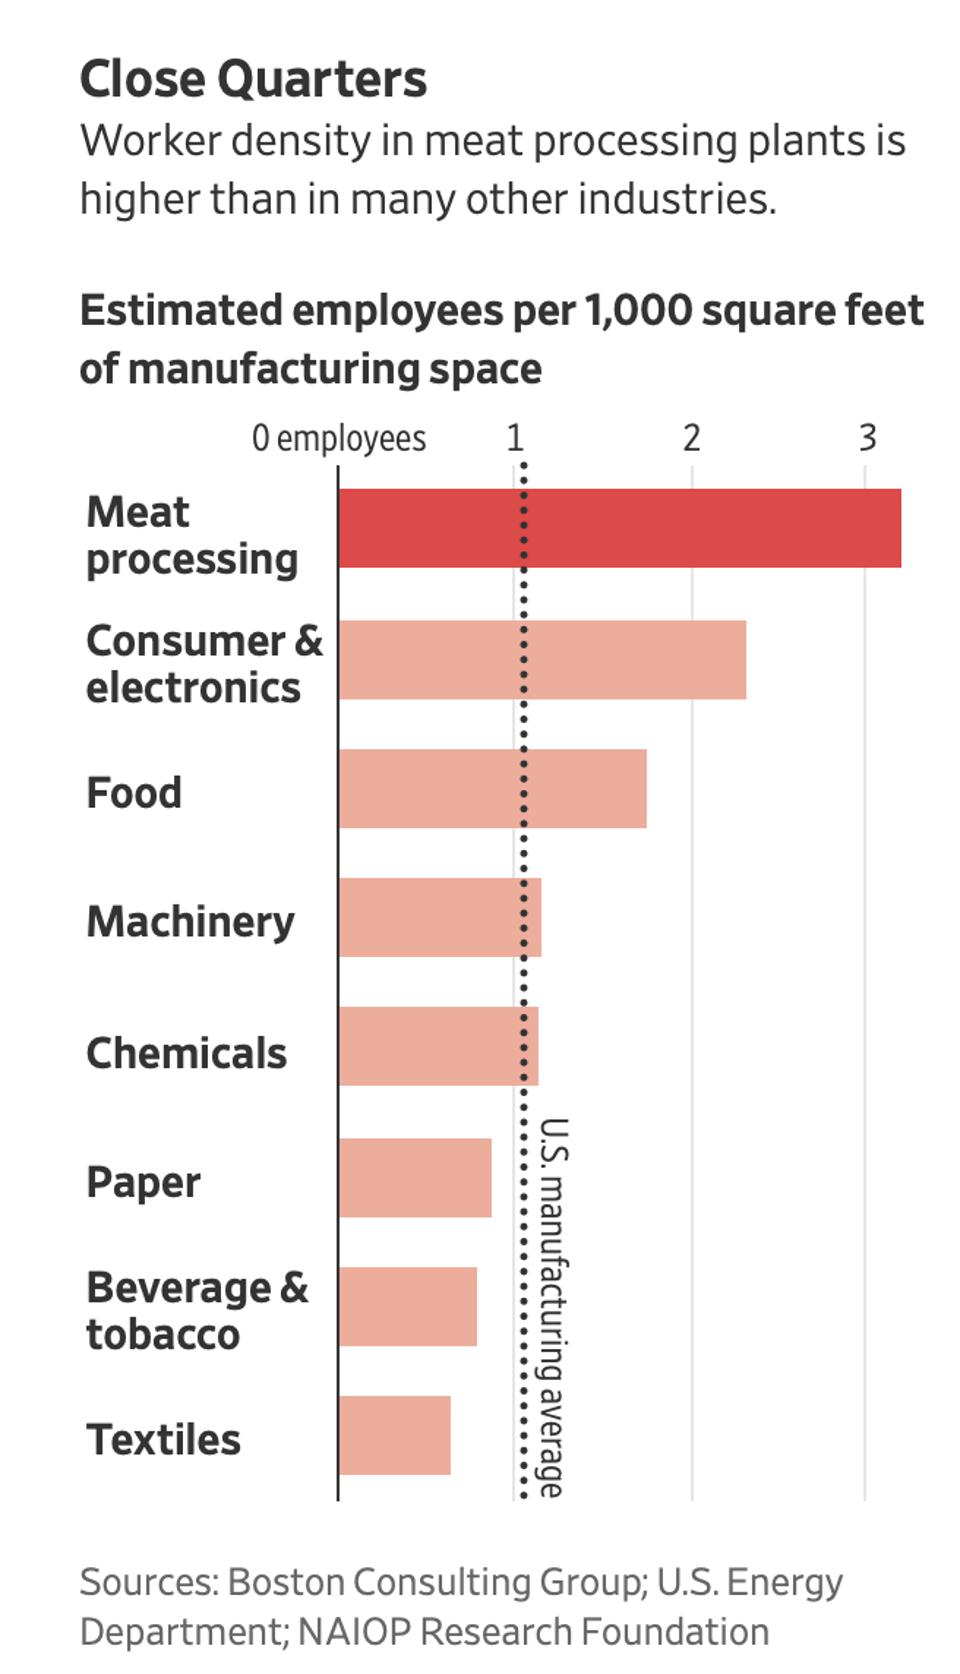 Worker density in meat processing plants is triple the US manufacturing average